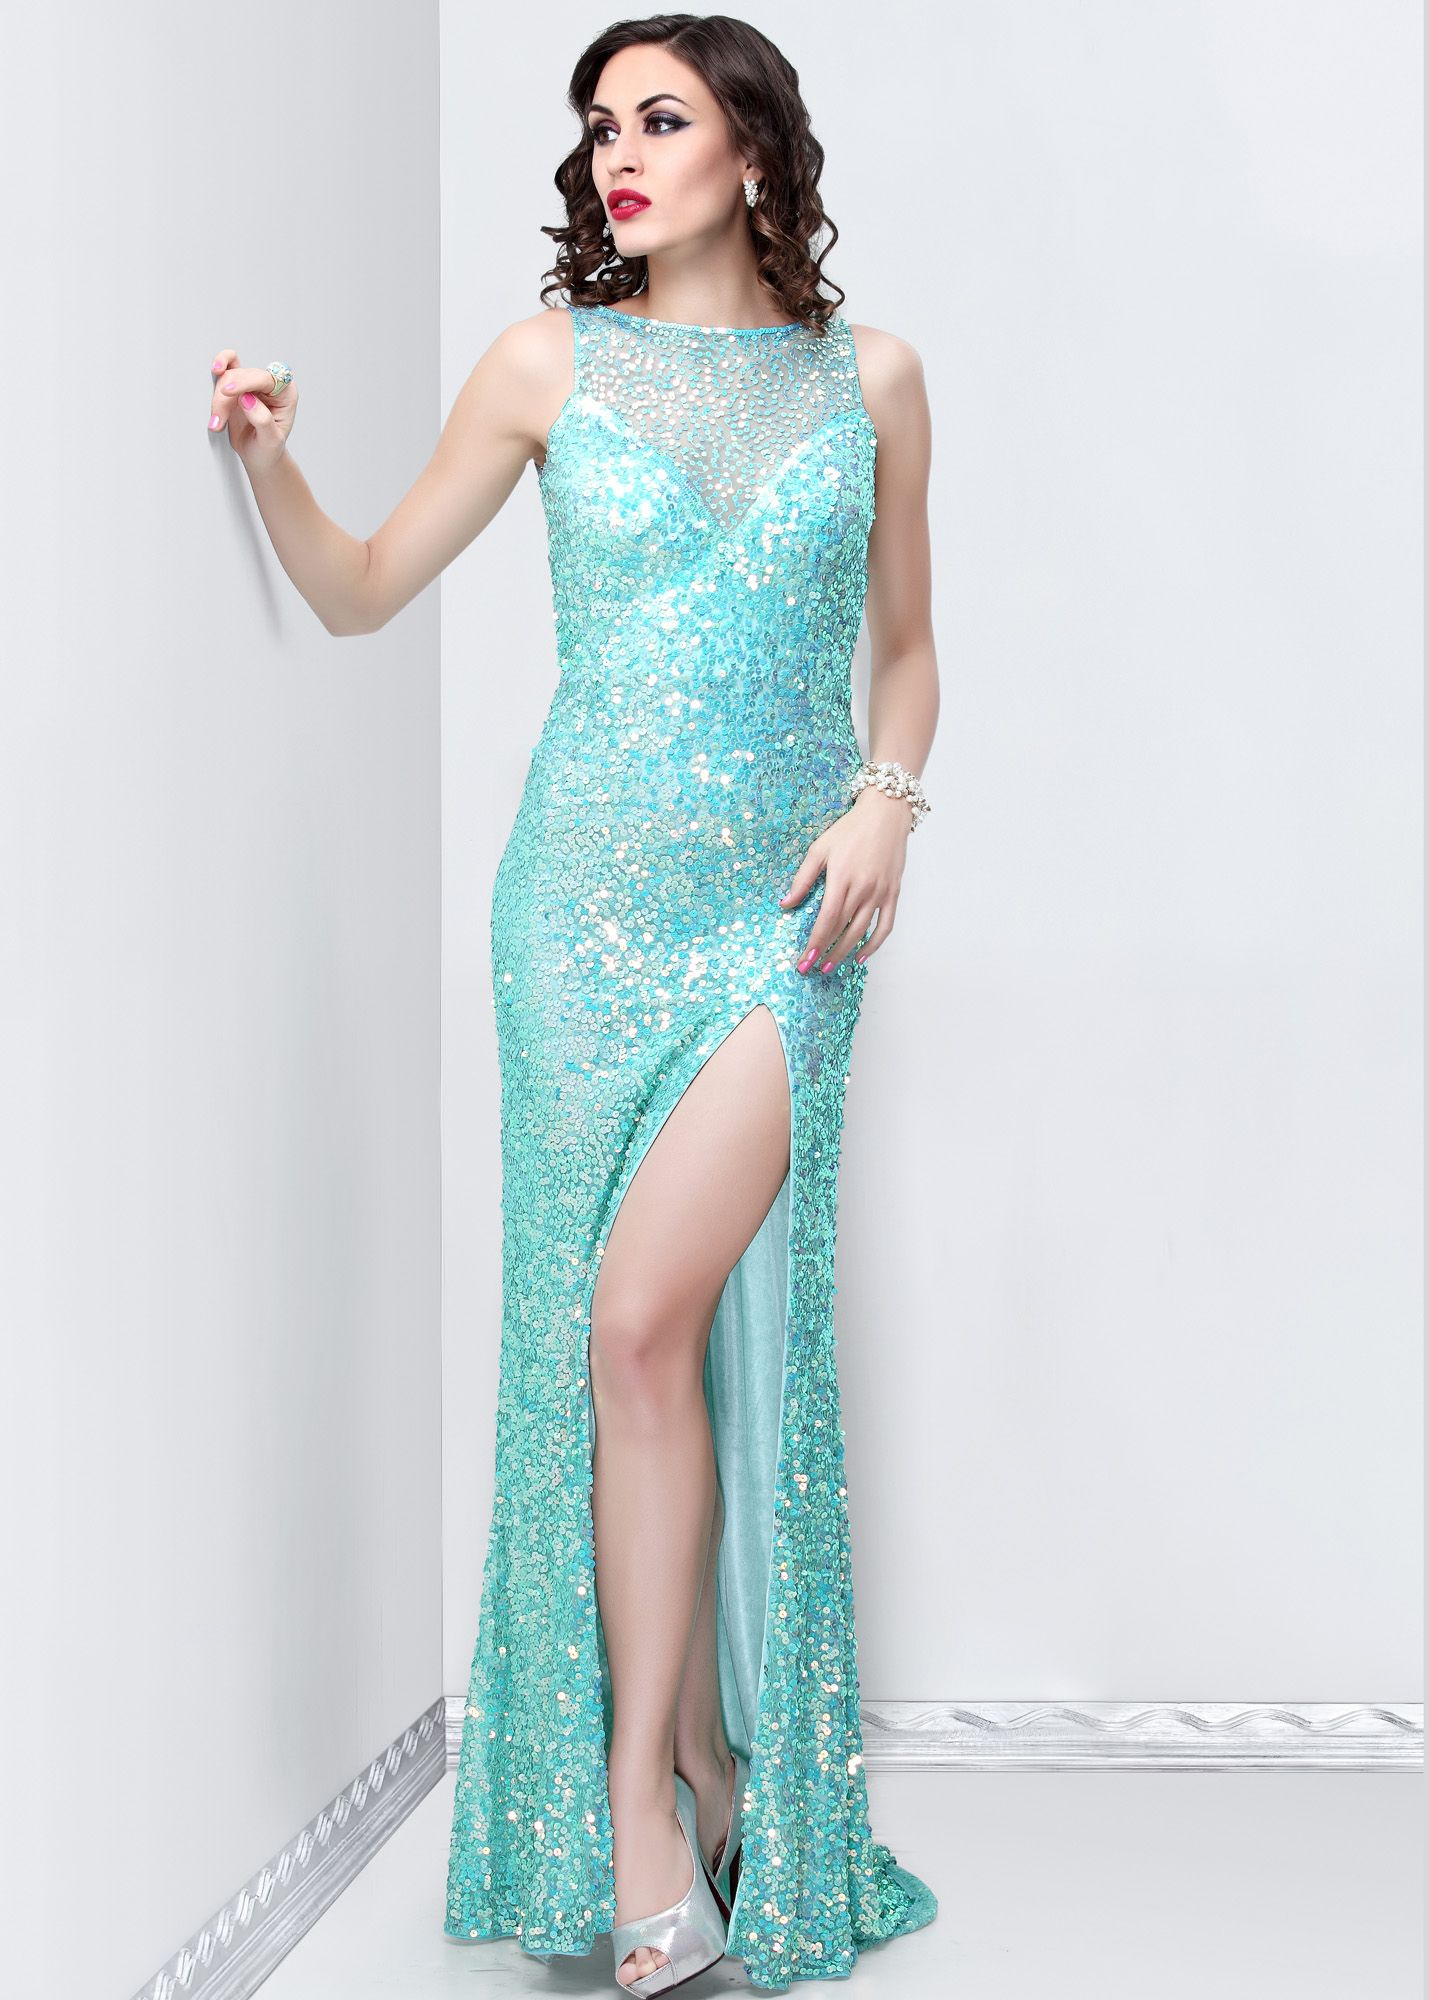 Primavera aqua high neck sequin prom dresses online